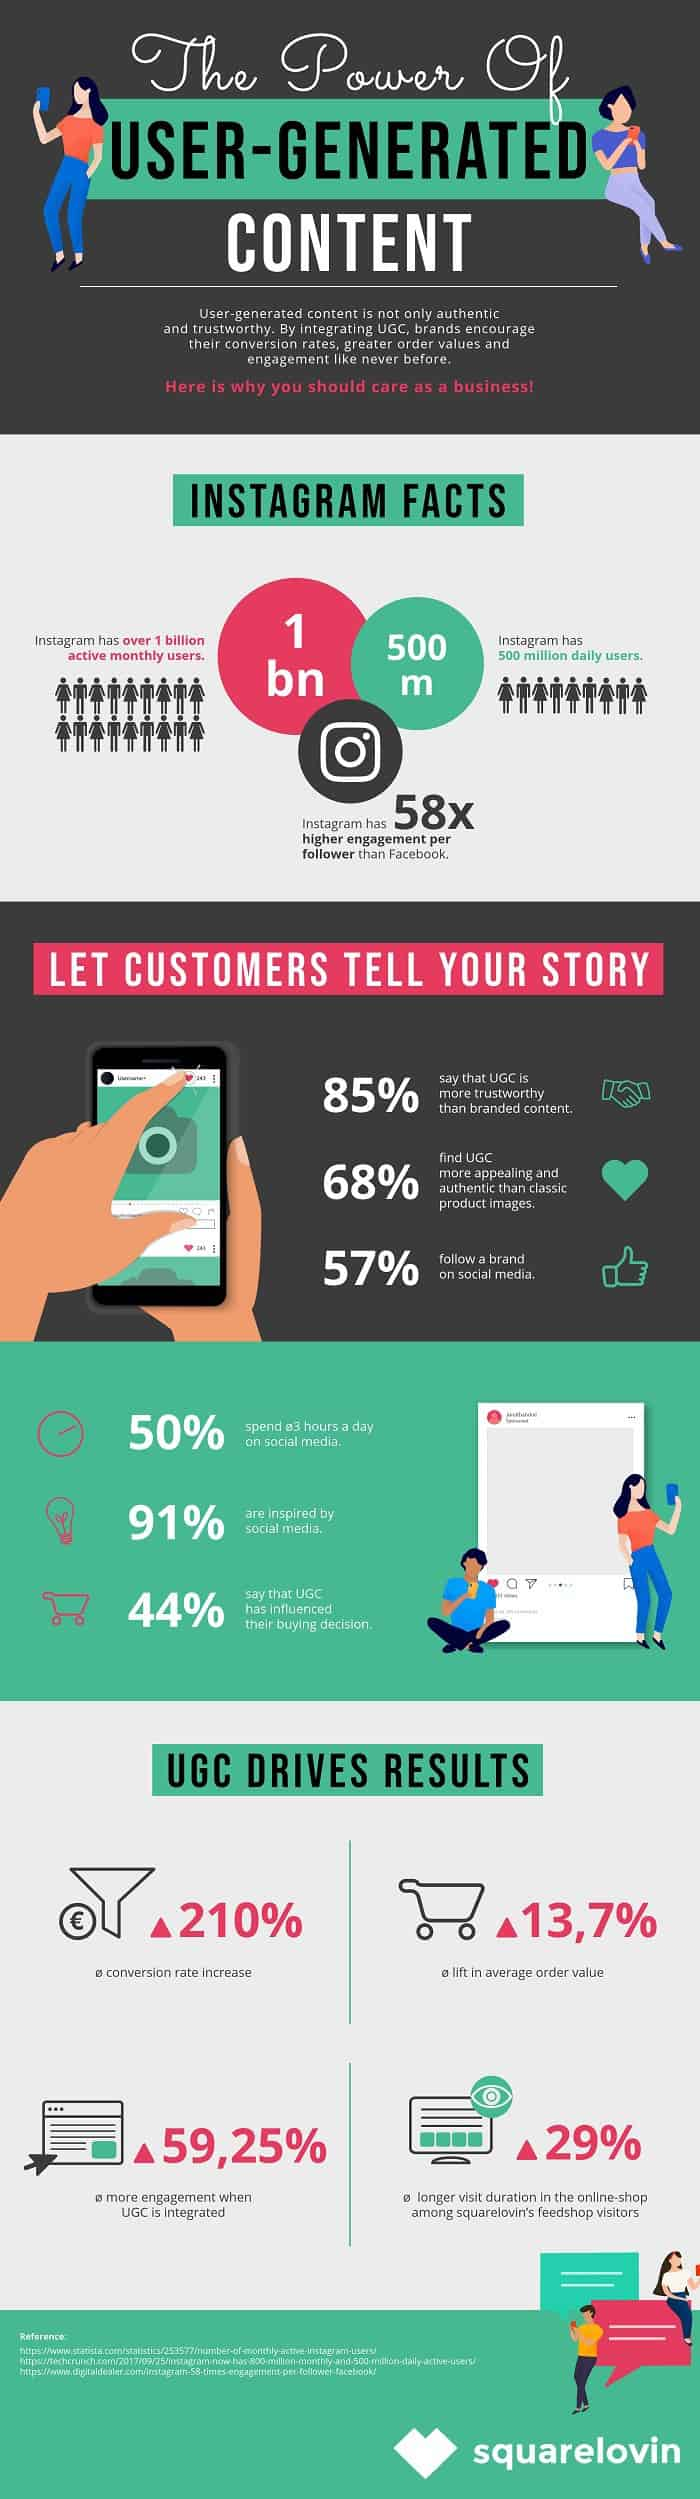 Learn more about, and harness the full power of using user-generated content in your Instagram marketing, with this great infographic.